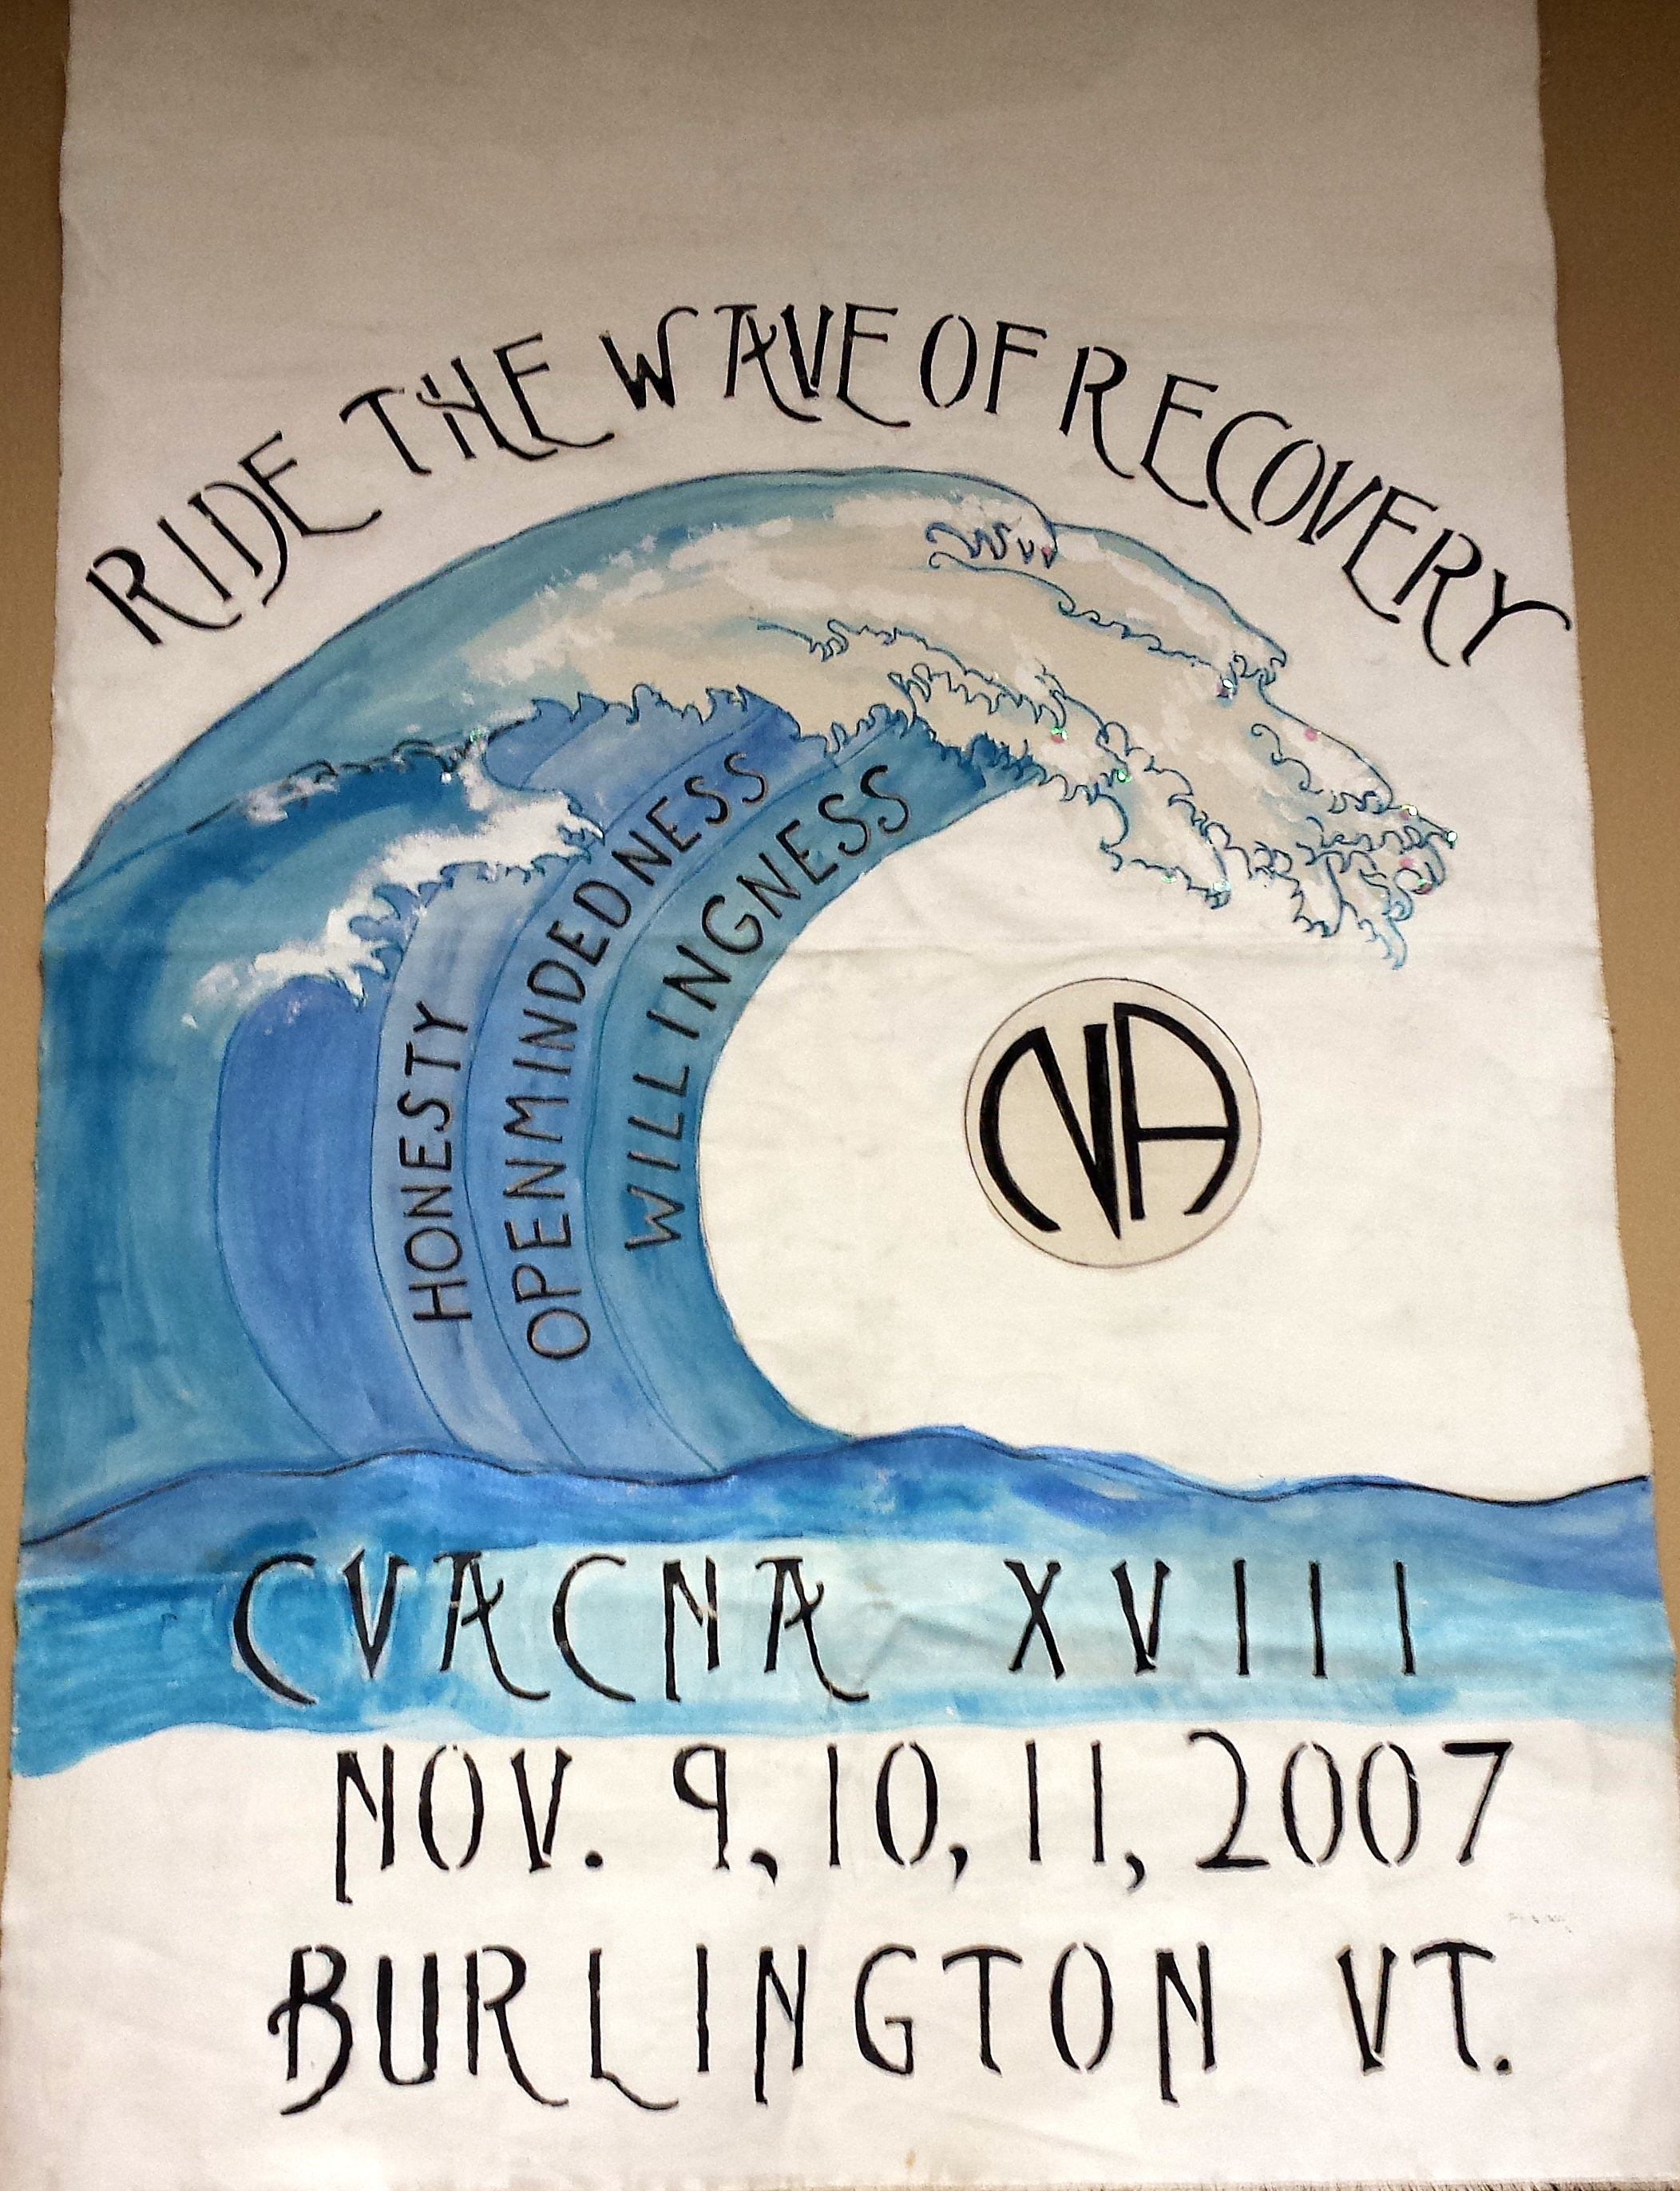 CVACNA XVIII (2007) Ride The Wave Of Recovery